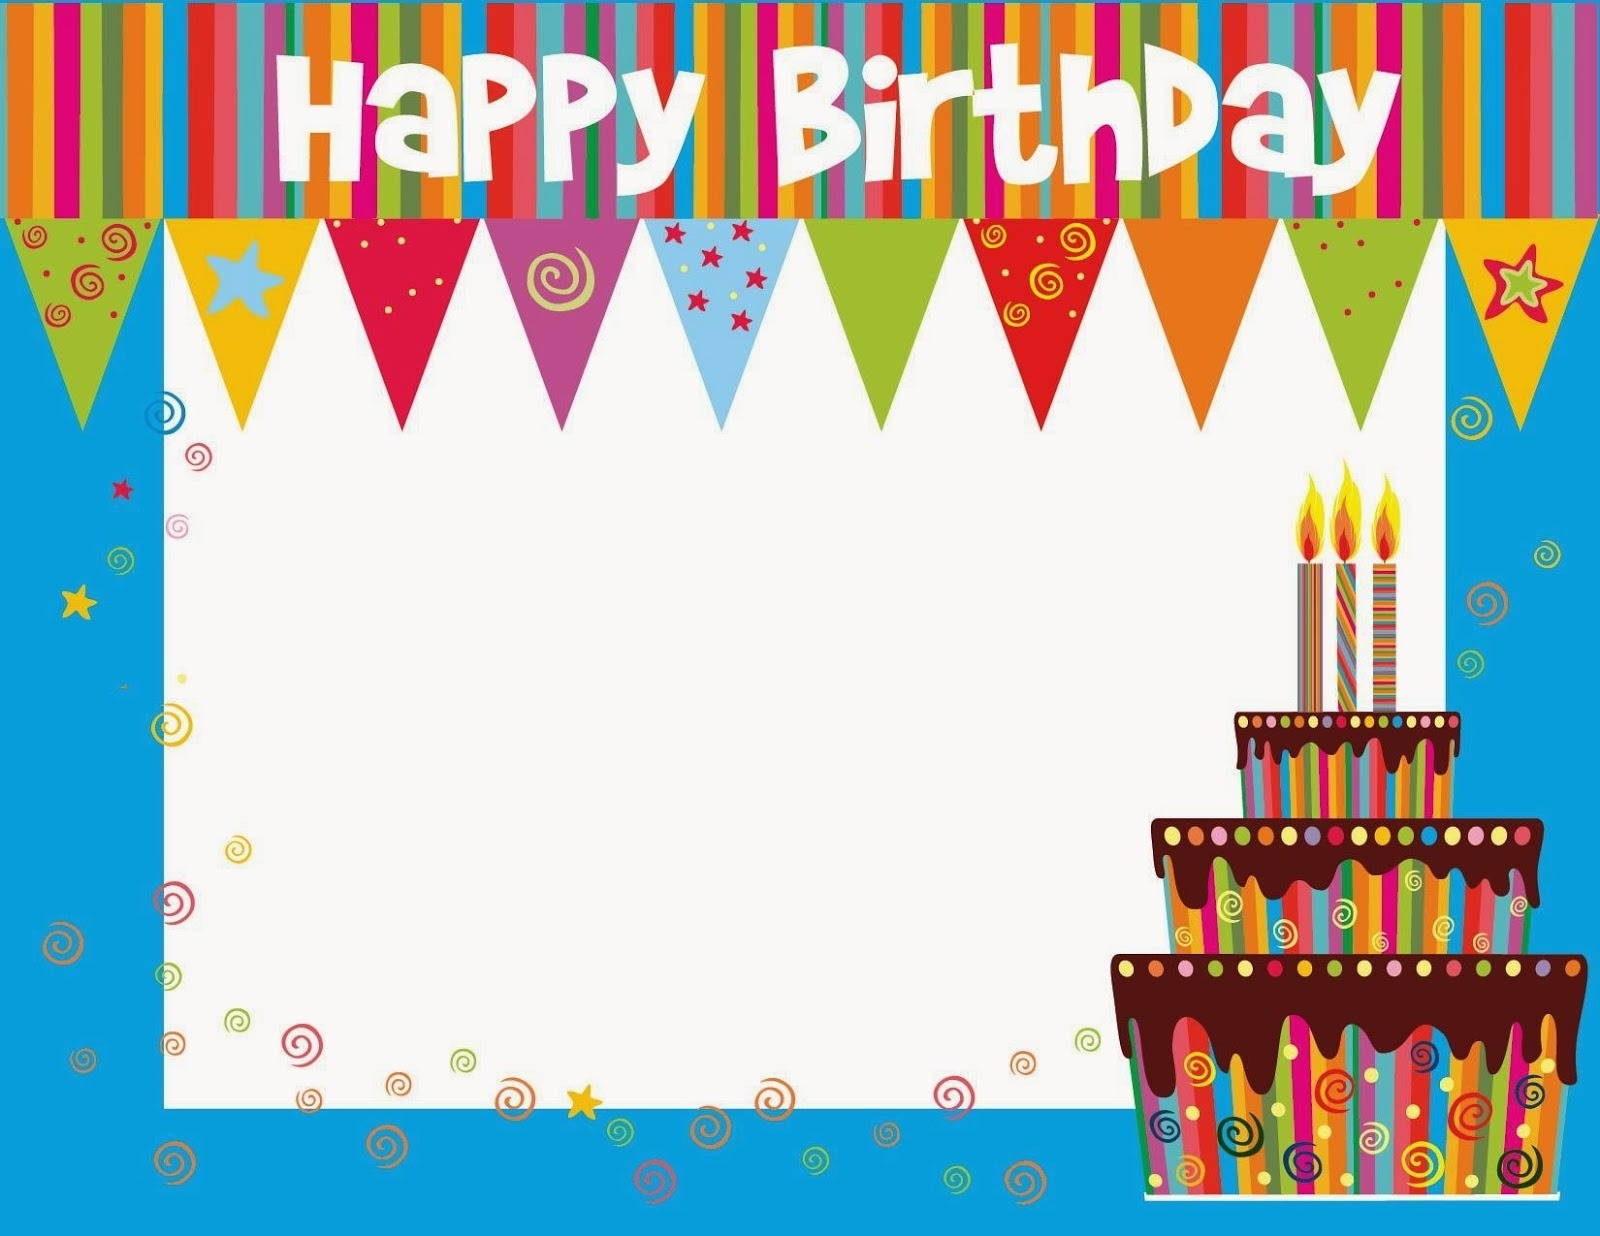 Happy Birthday Cards Online Free Printable – Happy Holidays! Inside - Free Printable Happy Birthday Cards Online